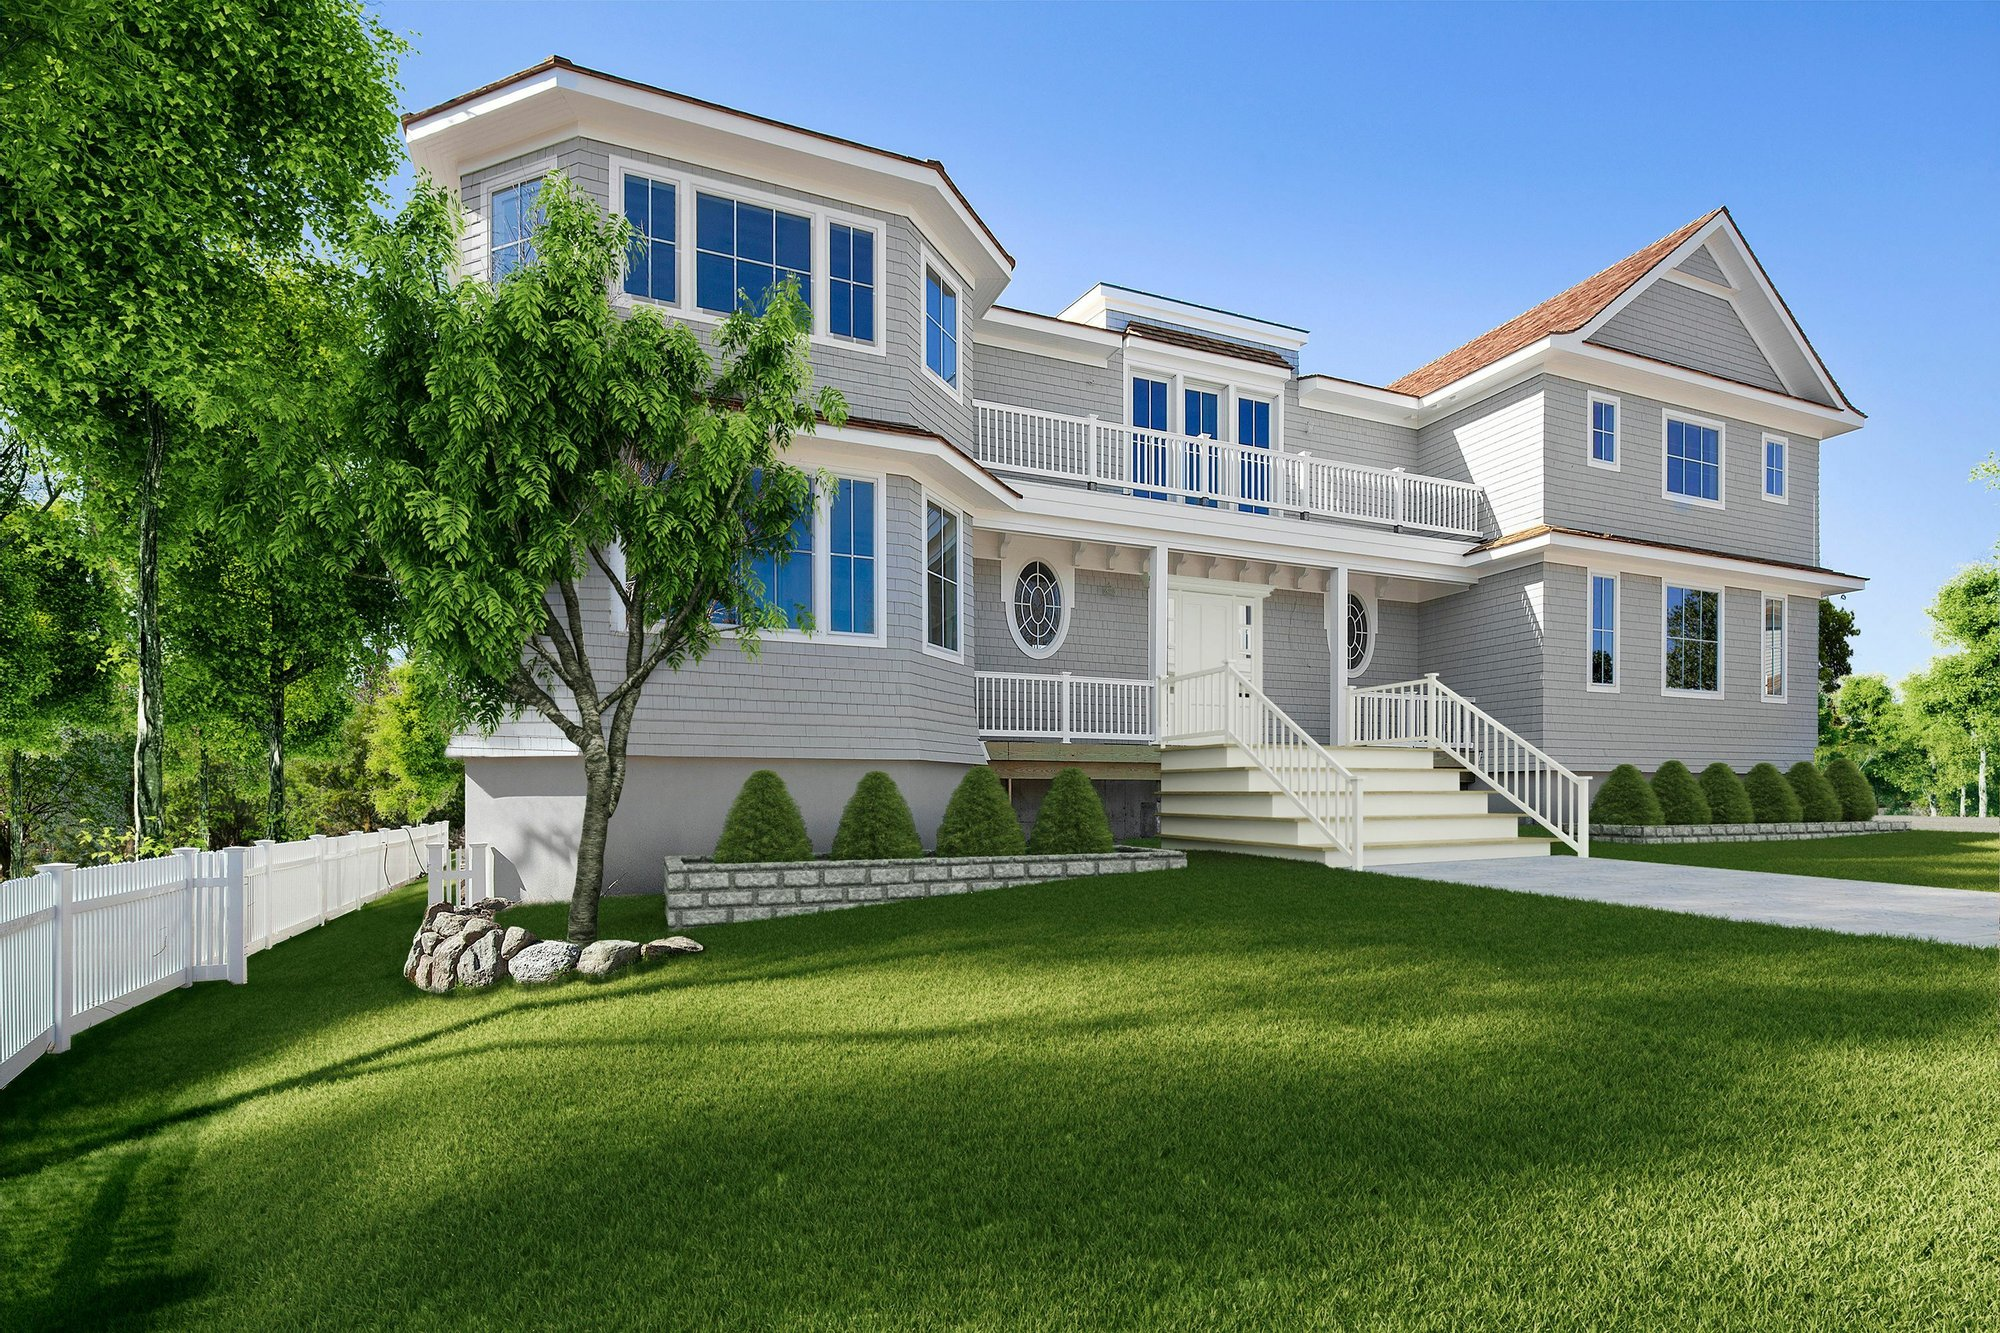 House in Quogue, New York, United States 1